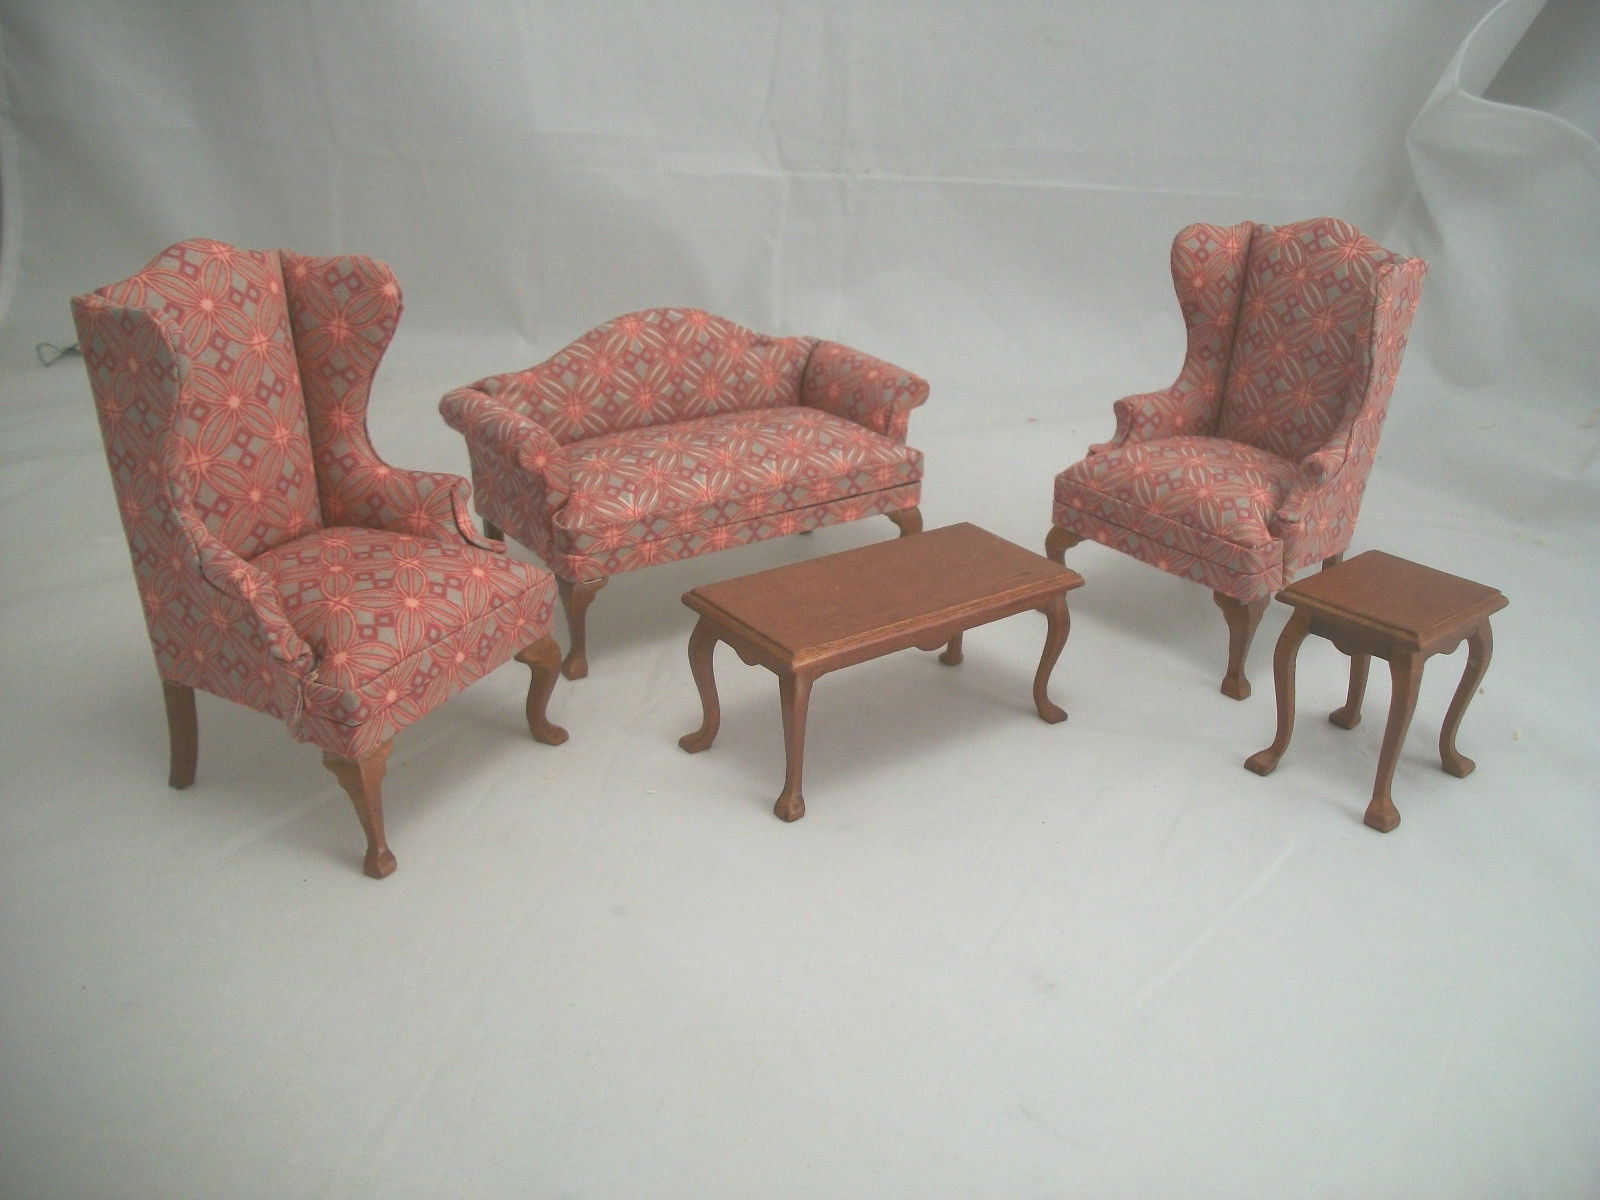 Family Living Room Set dollhouse miniatures 5pc T6854 1/12 scale Sofa Wing Chair